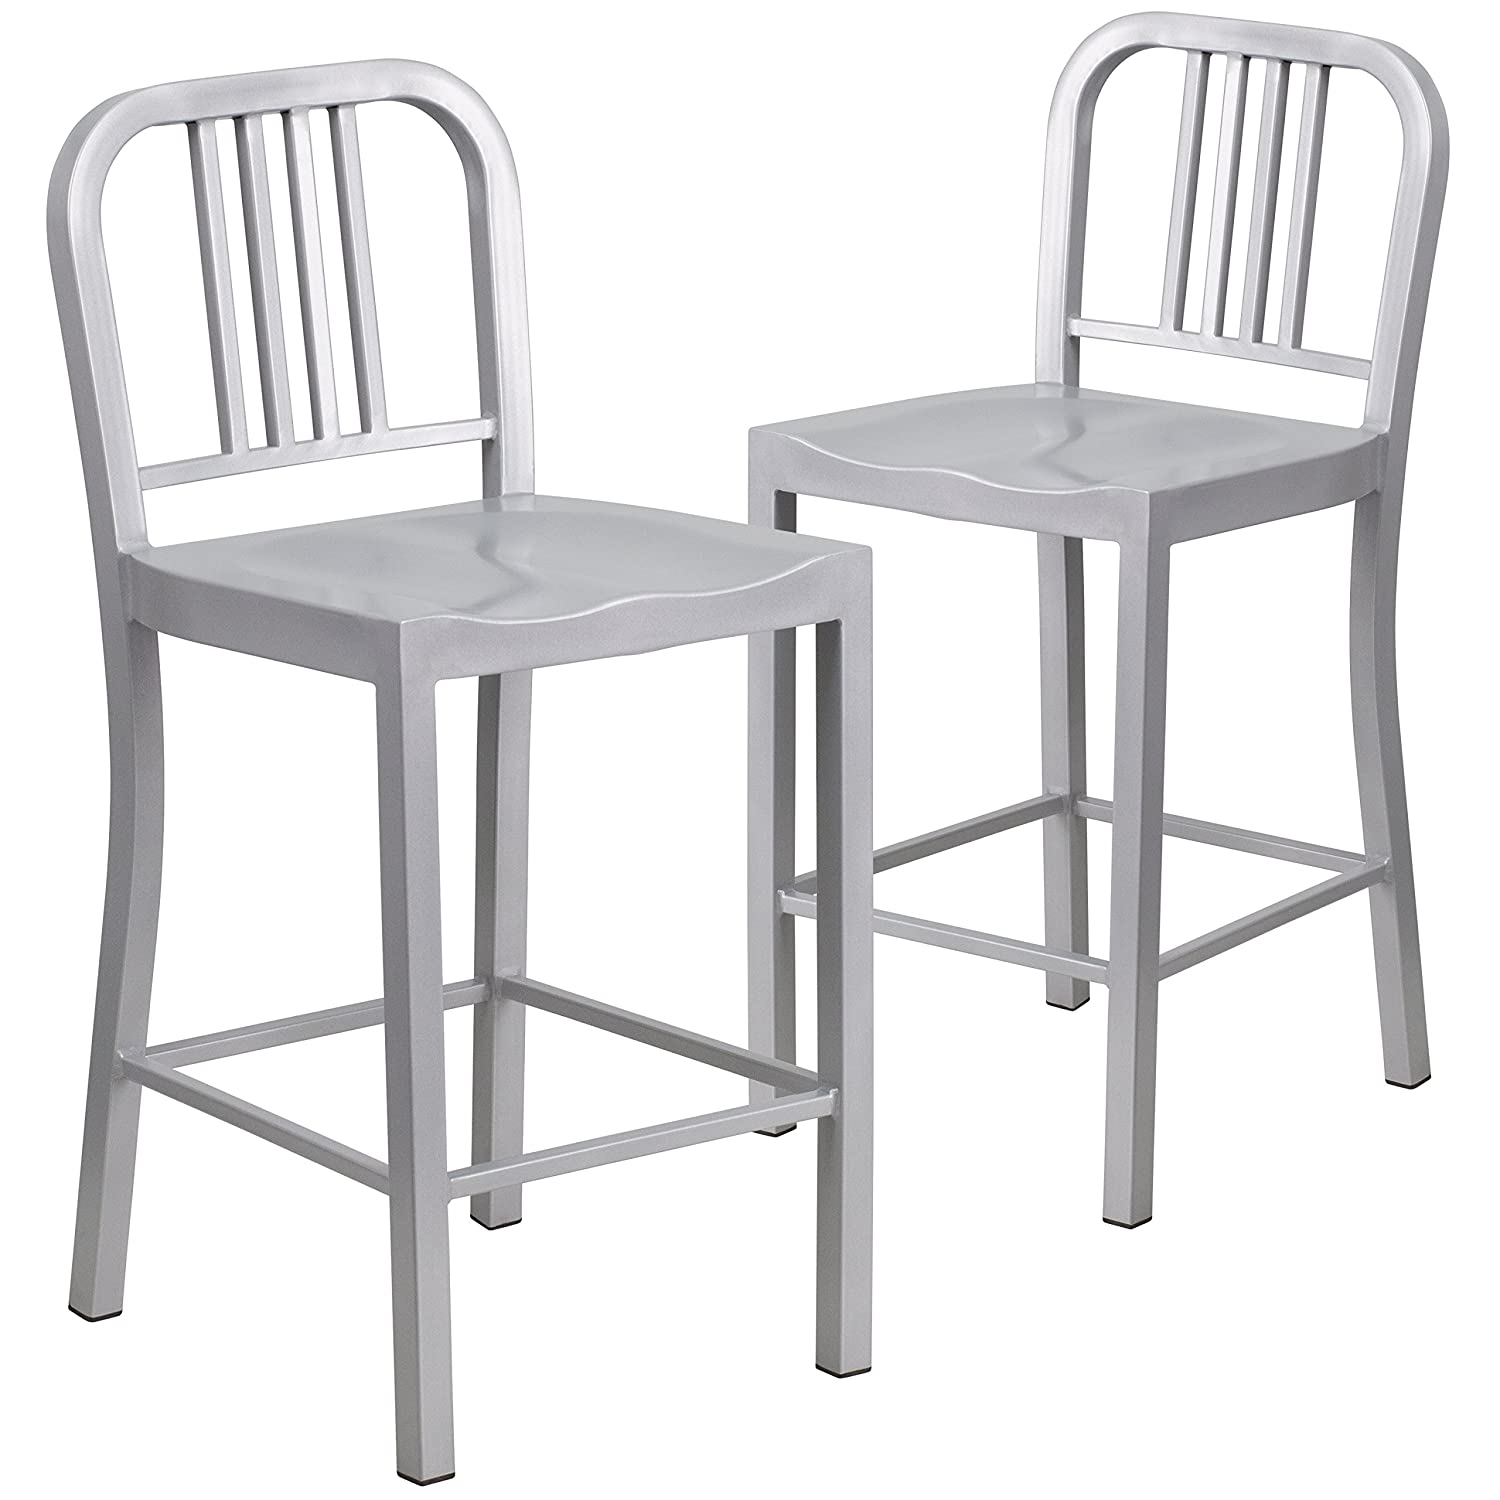 Amazon com flash furniture 2 pk 24 high silver metal indoor outdoor counter height stool kitchen dining